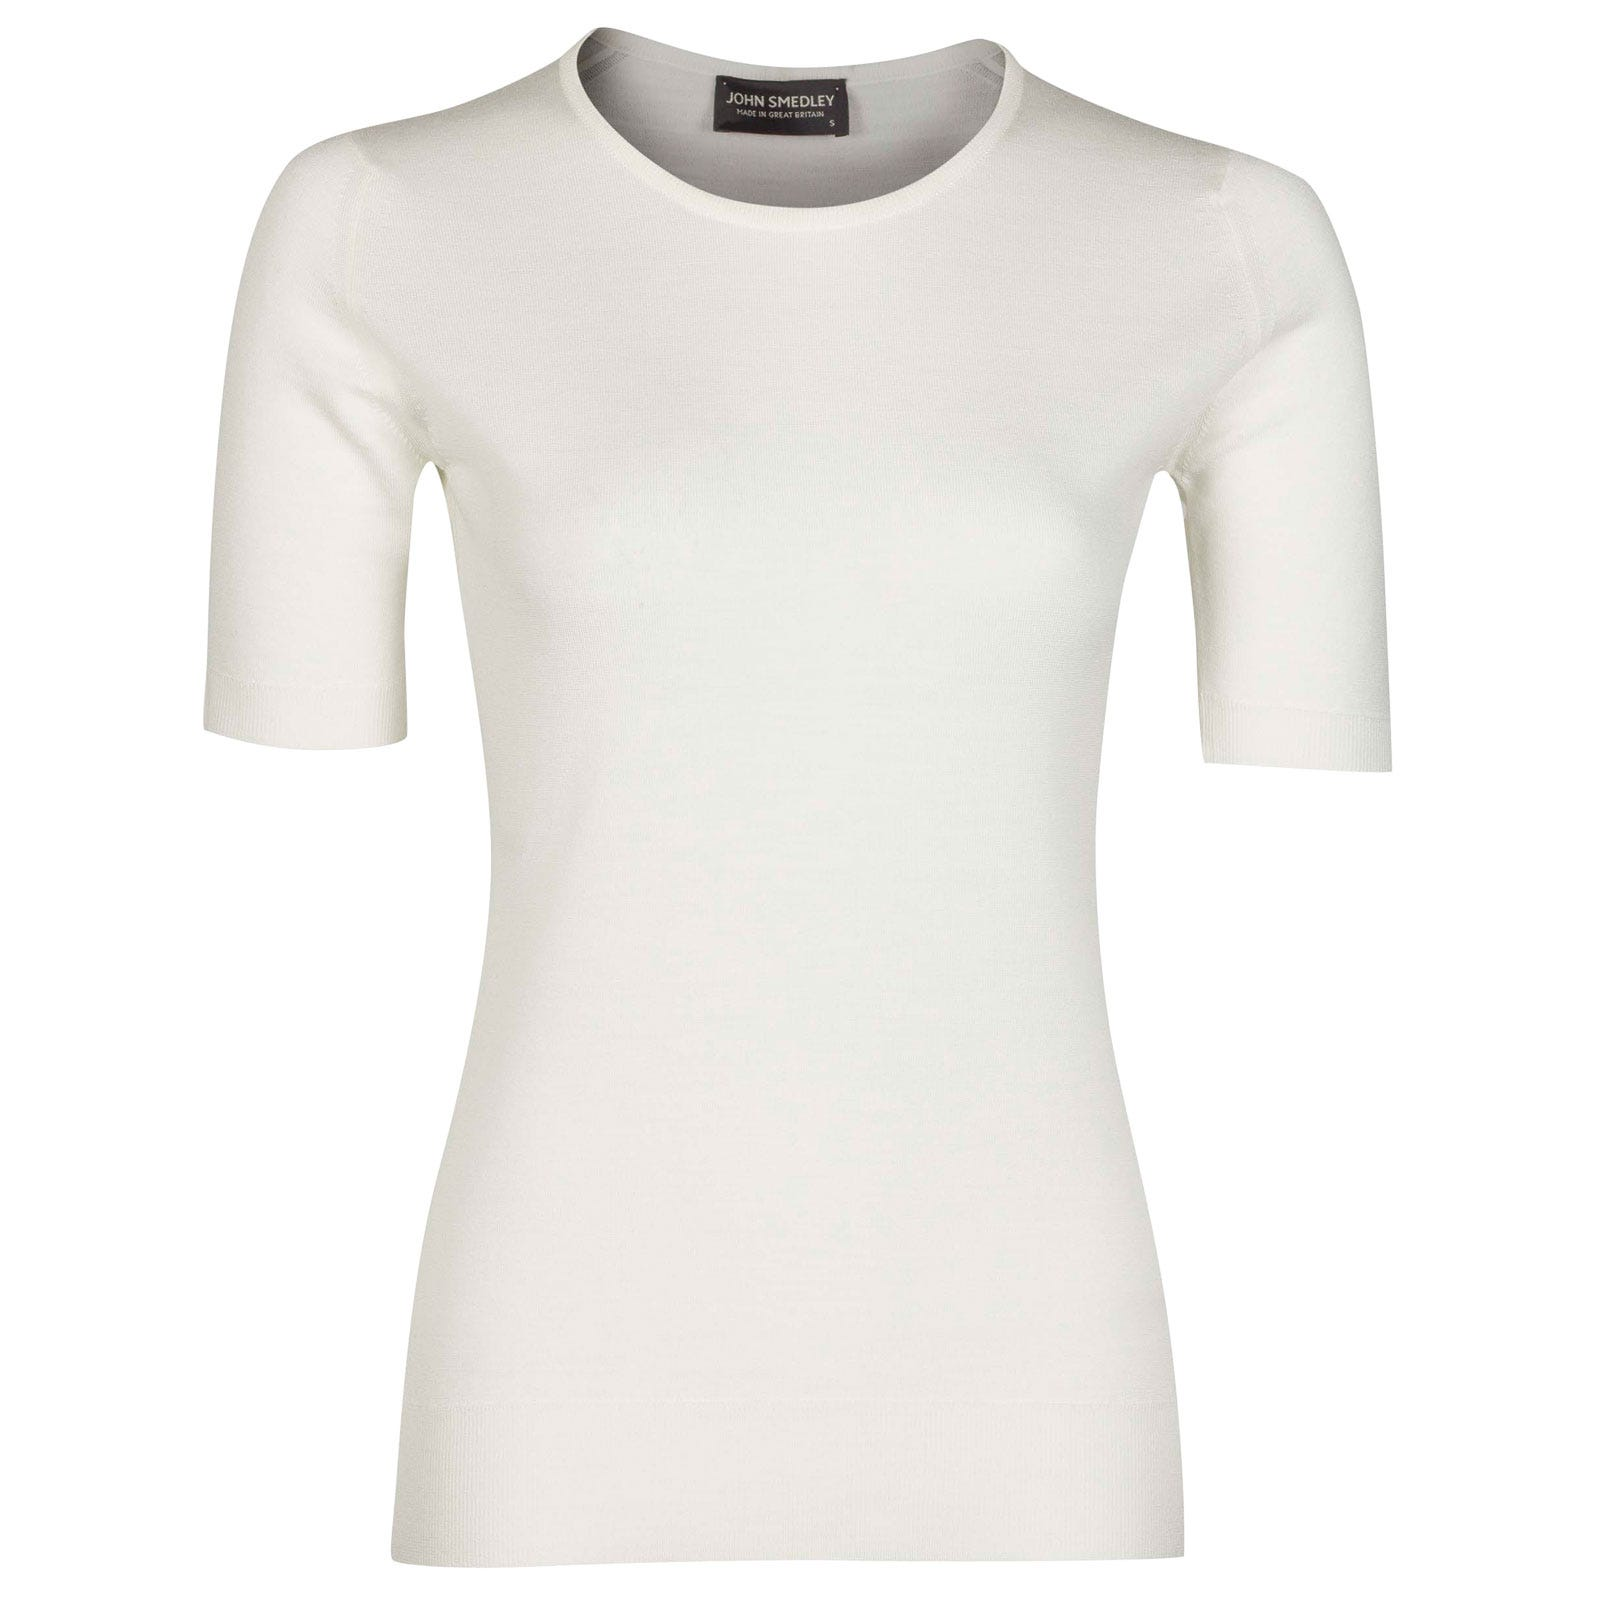 John Smedley Rietta Merino Wool Sweater in Snow White-XL